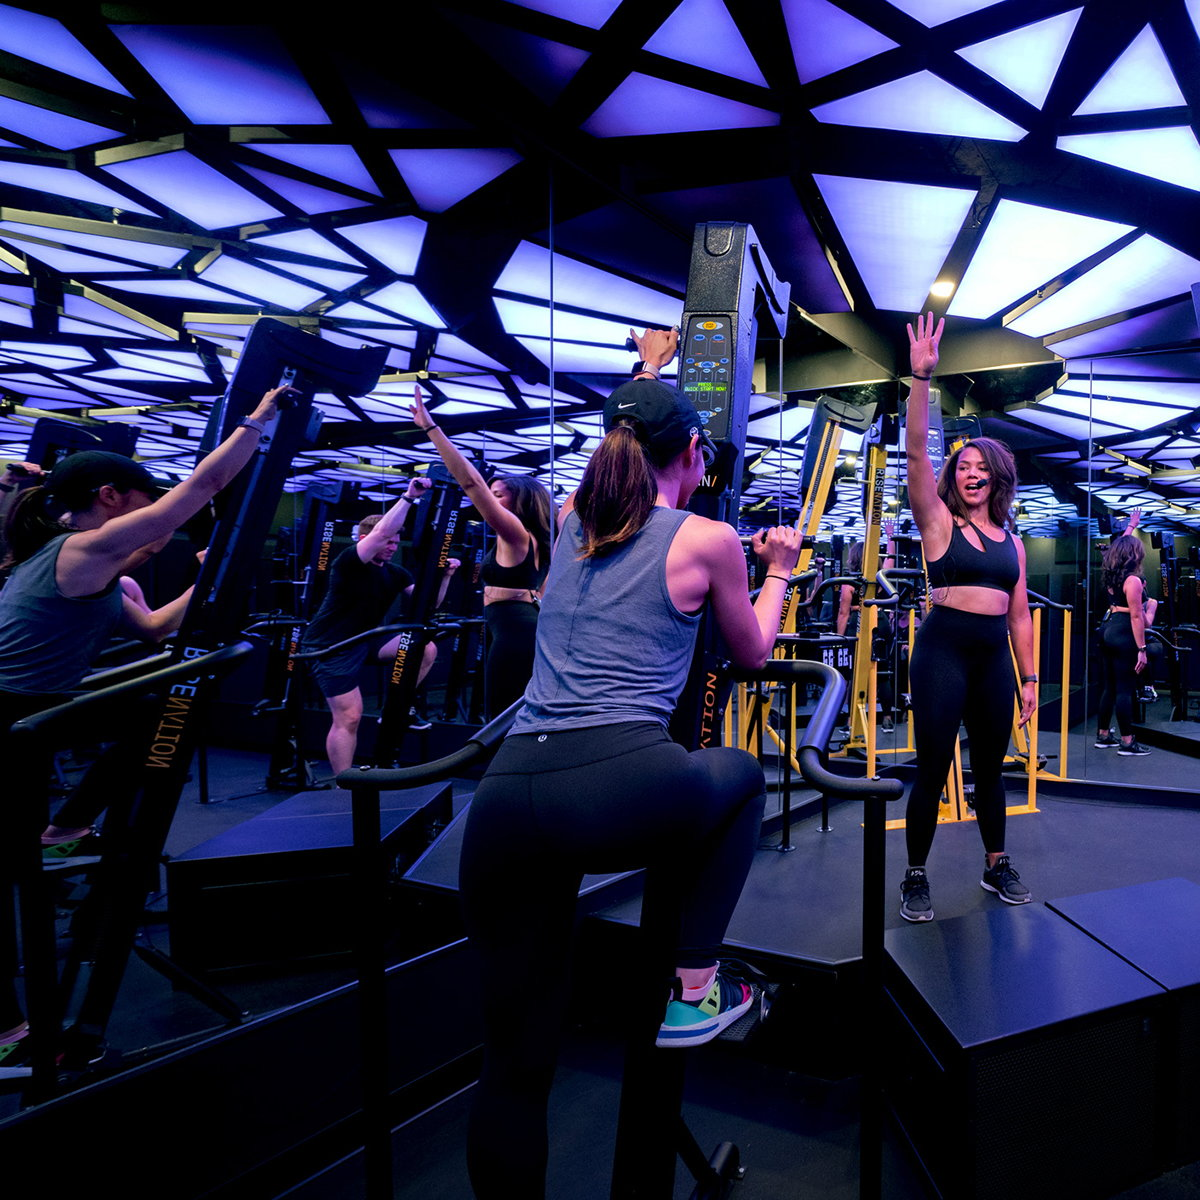 Cactus Spurs Fitness Motivation with Immersive Lighting Installation for Rise Nation